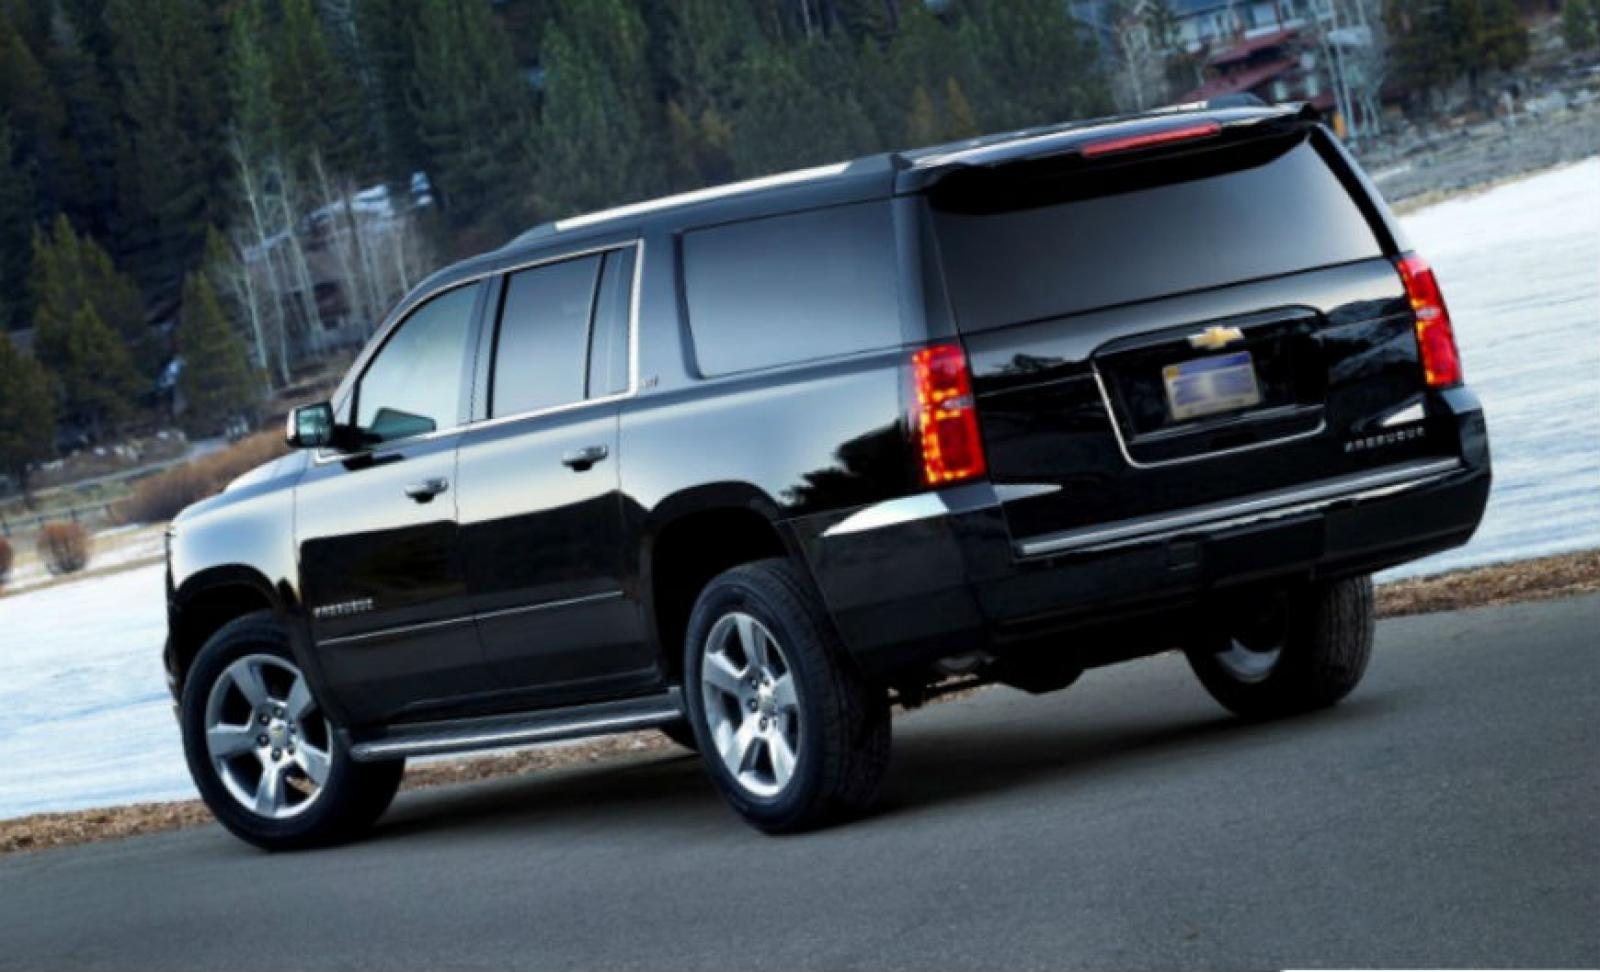 2015 chevrolet suburban information and photos zombiedrive. Black Bedroom Furniture Sets. Home Design Ideas